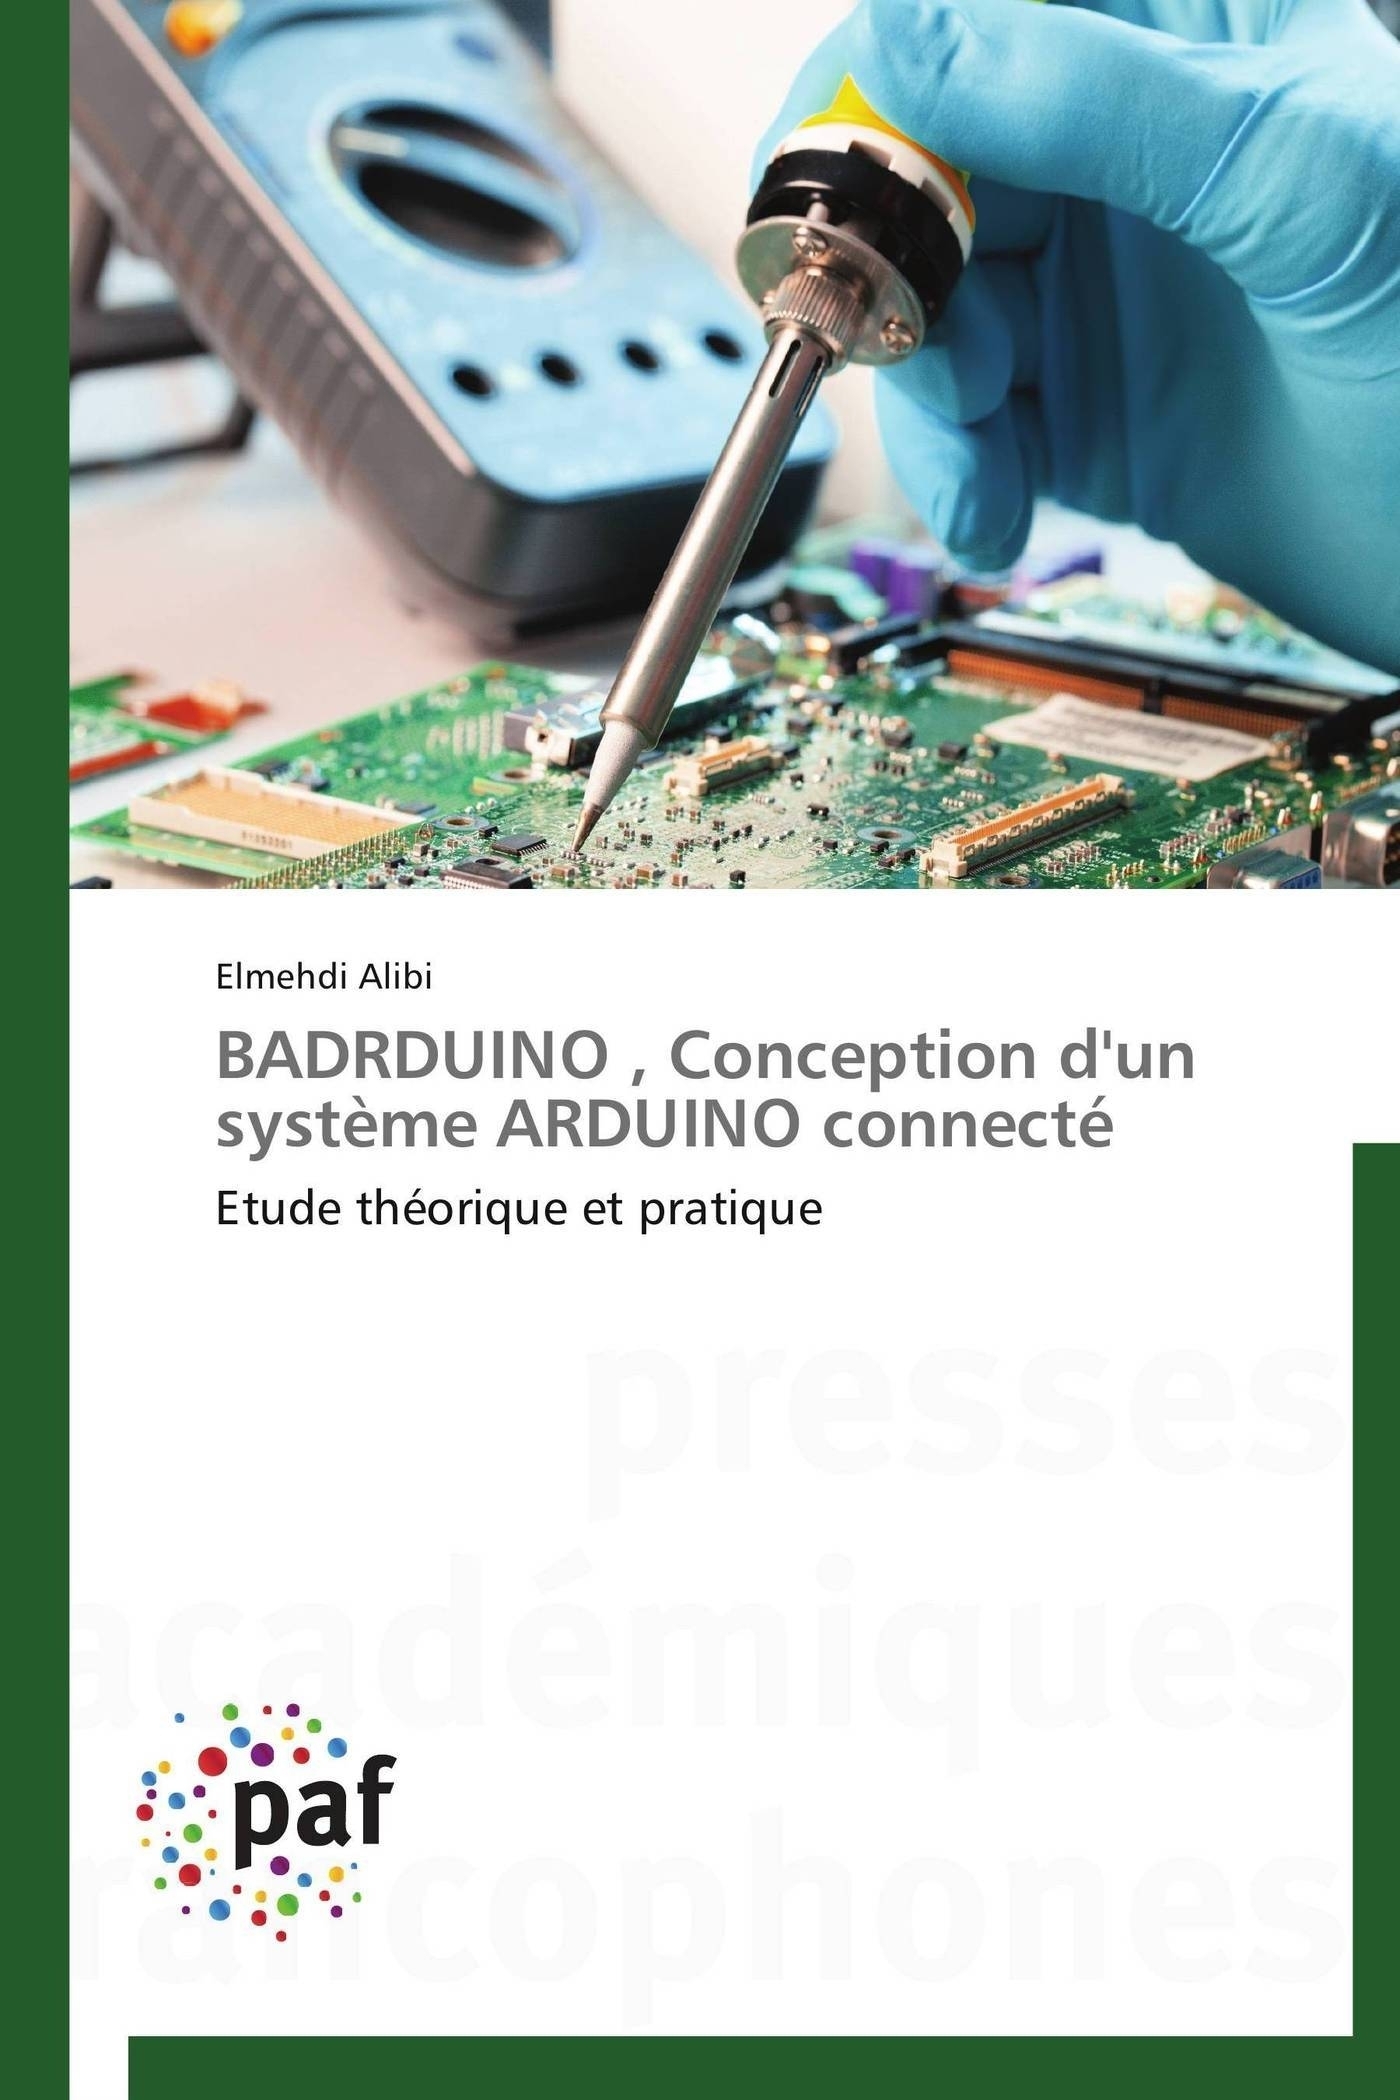 BADRDUINO , CONCEPTION D'UN SYSTEME ARDUINO CONNECTE